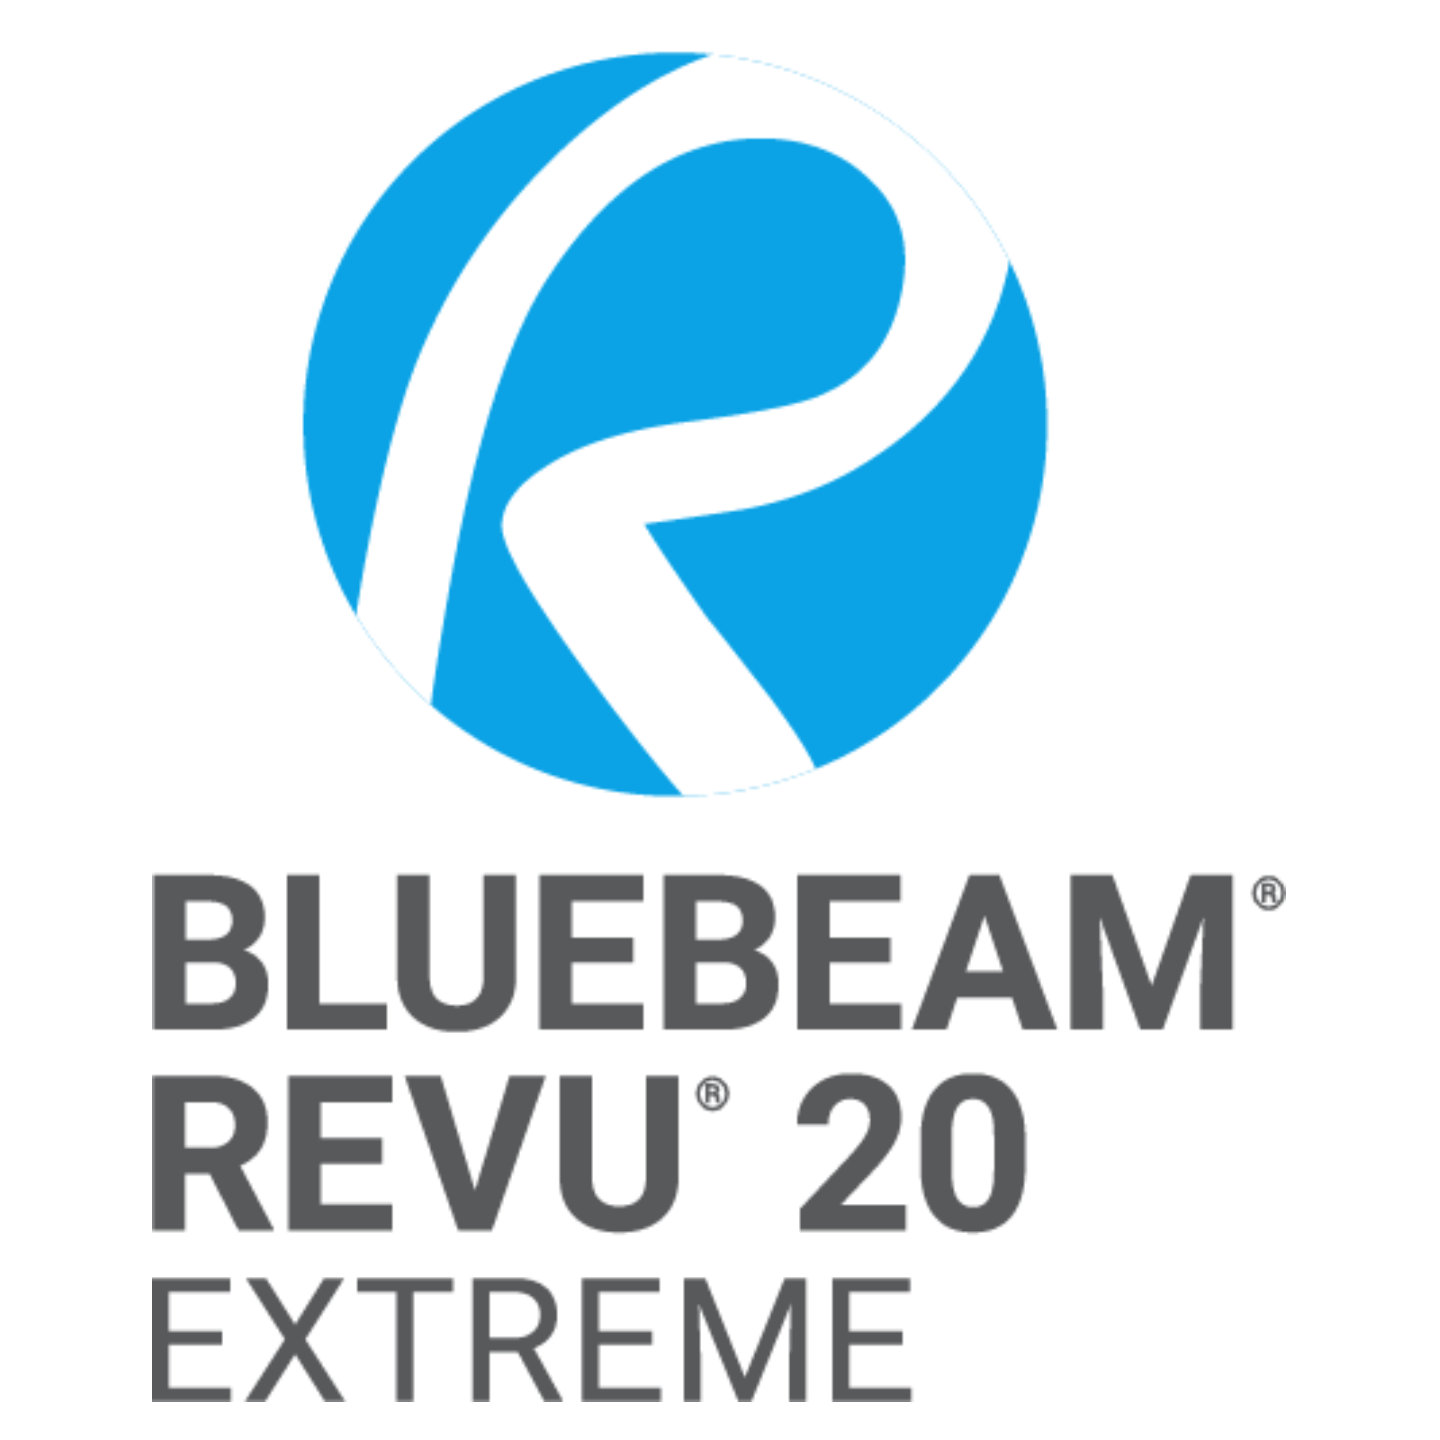 BLUEBEAM REVU 2020 EXTREME BUNDLED WITH NEW MAINTENANCE & SUPPORT